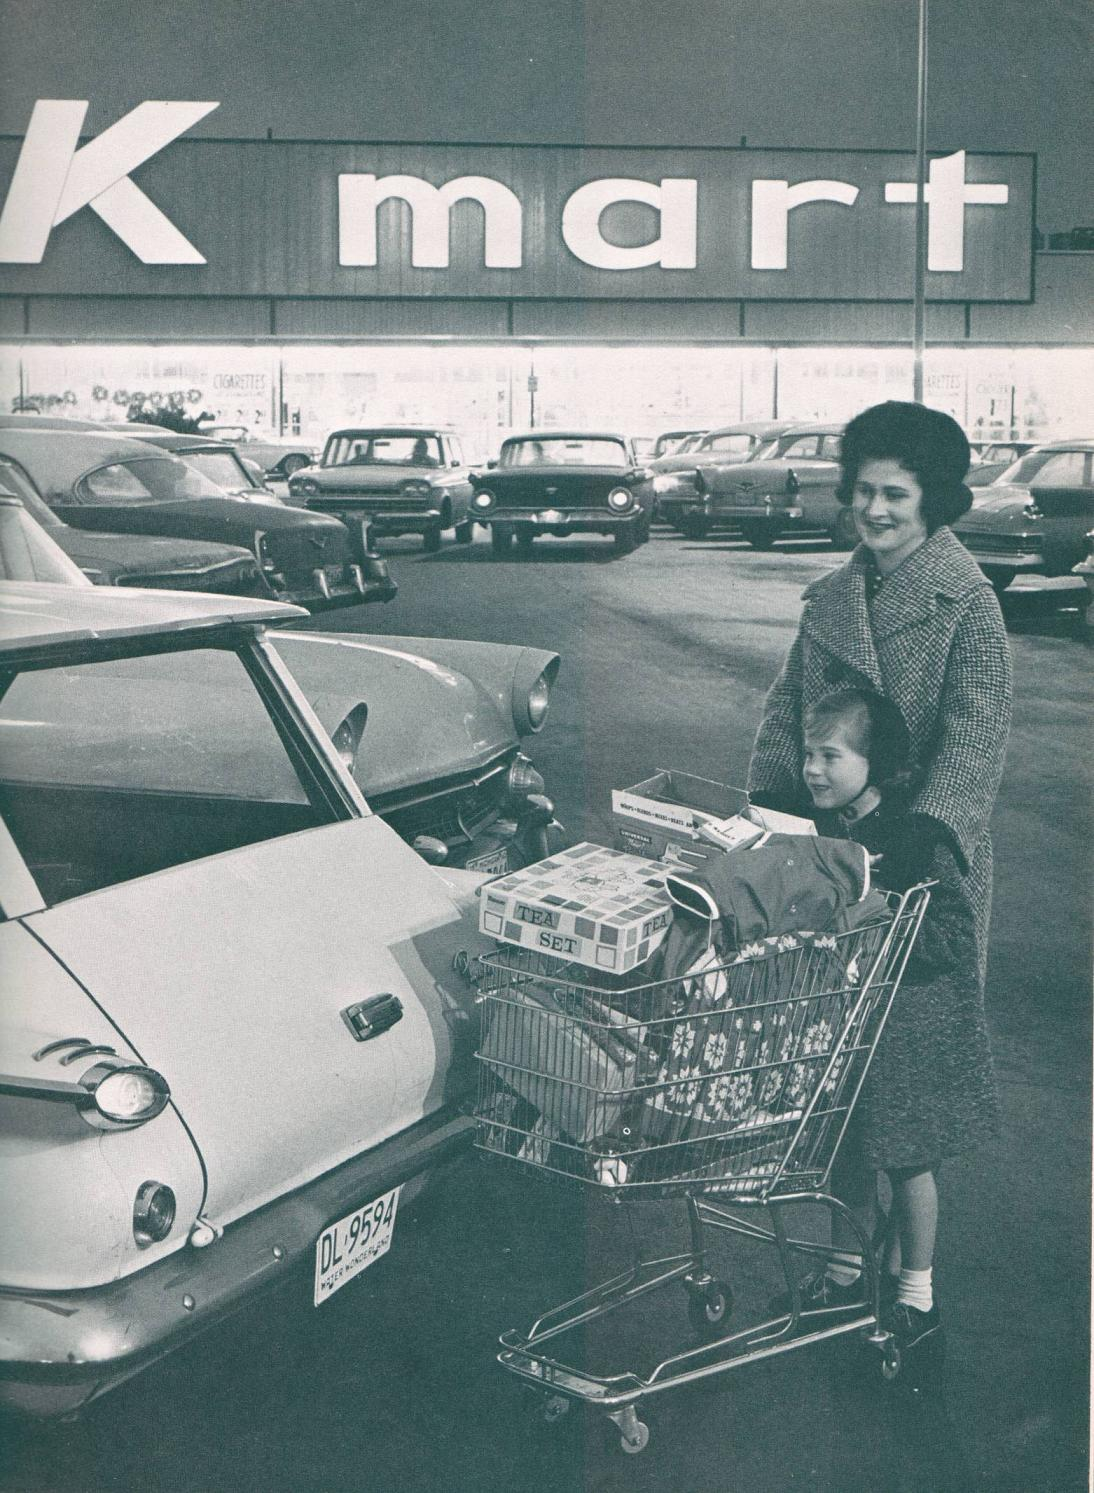 The First Kmart Department Store Opens In Garden City Michigan In 1962